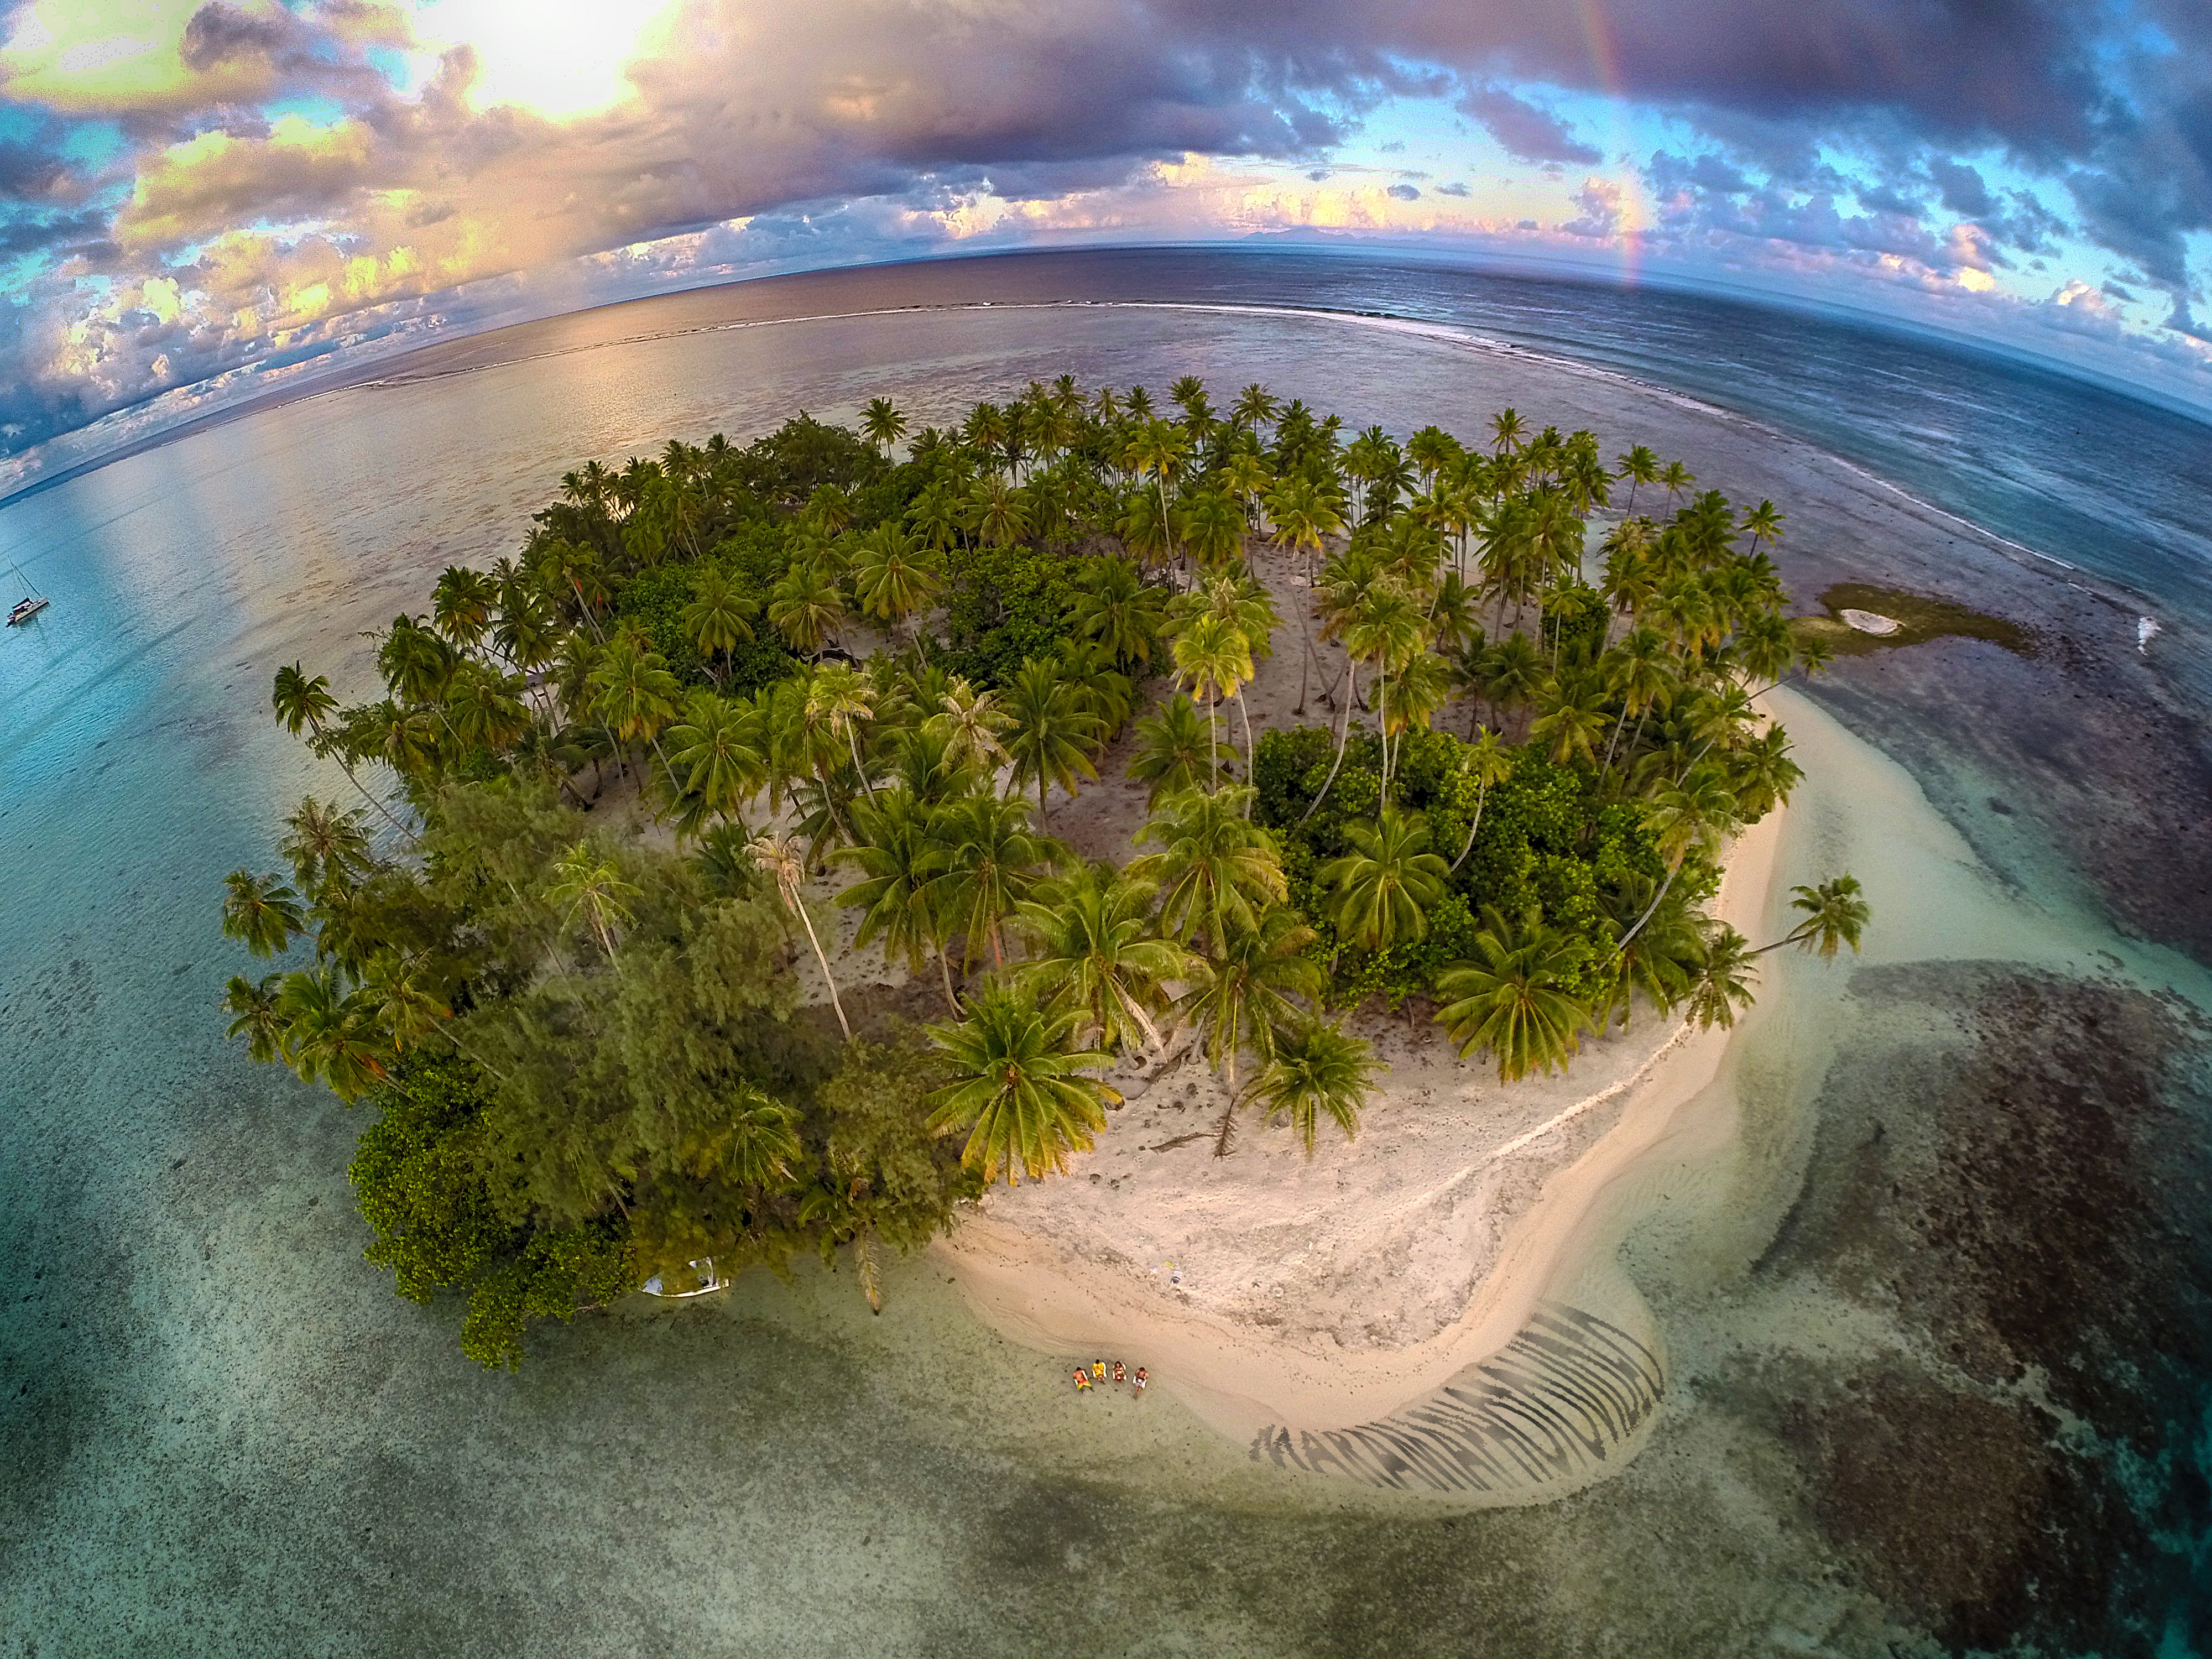 drone gopro camera with Tahiti French Polynesia Tahaa Lagoon on Plaza De La Chinita Maracaibo Venezuela also Hb Homeboat U818s Large 6 Axis Gyroscope Rc Quadcopter Drone Black Color With Fpv Camera Wifi 818 Real Time Fpv Remote Control further Tahiti French Polynesia Tahaa Lagoon moreover Ve ian Fortress Koules In Heraklion Port Crete 2 likewise Gopro Hero5 Black Session Review.